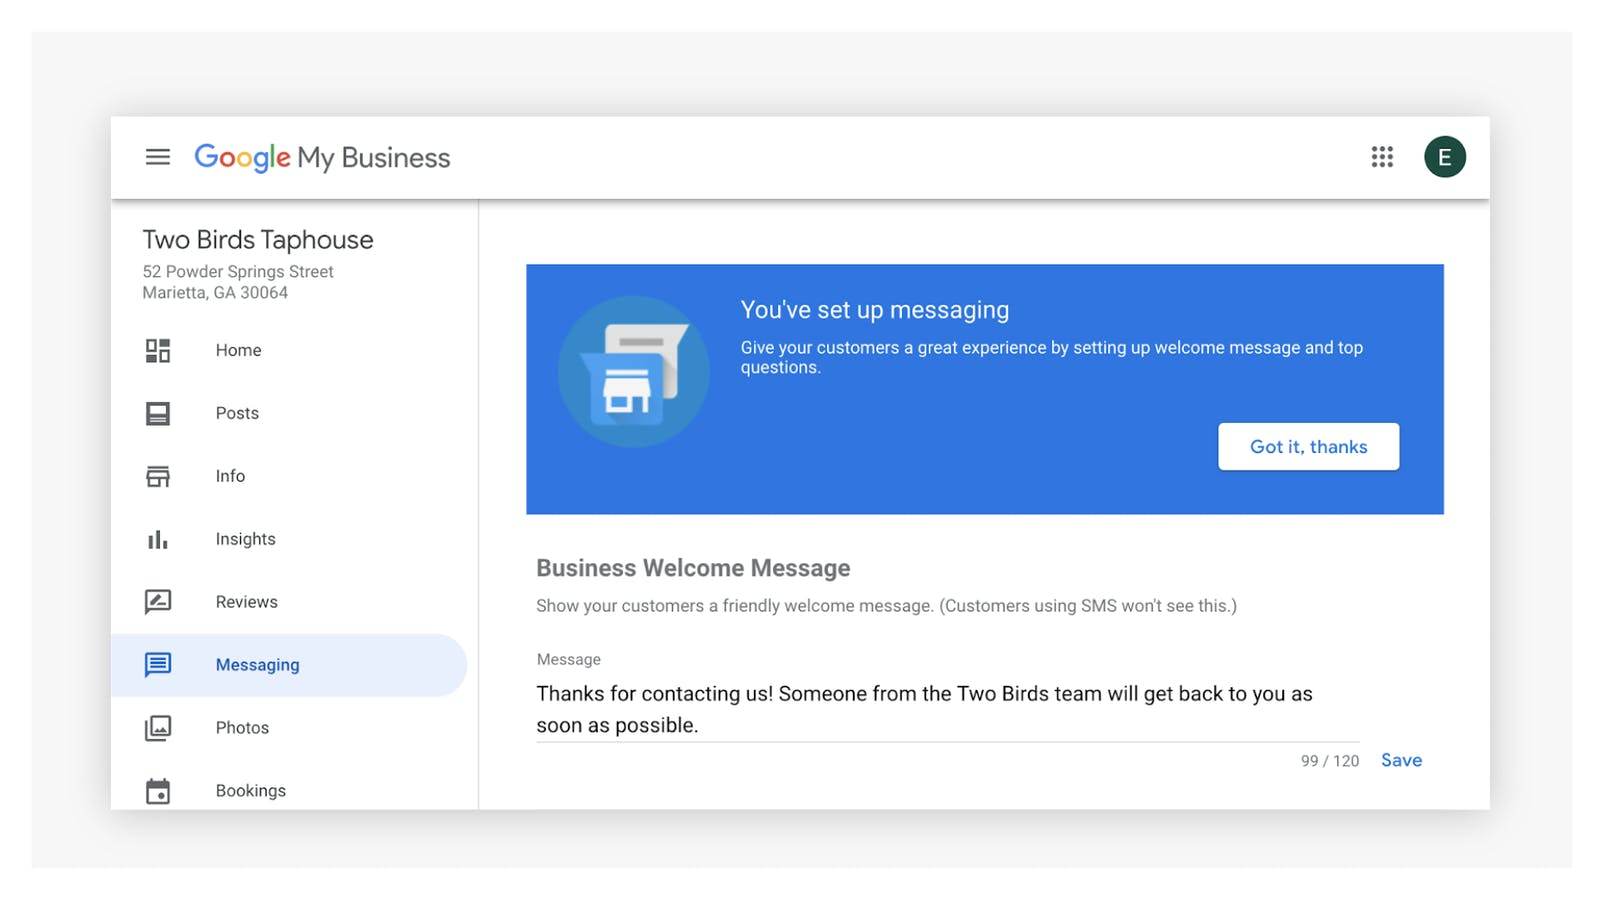 Turn on Google My Business Messaging to respond to restaurant reviews